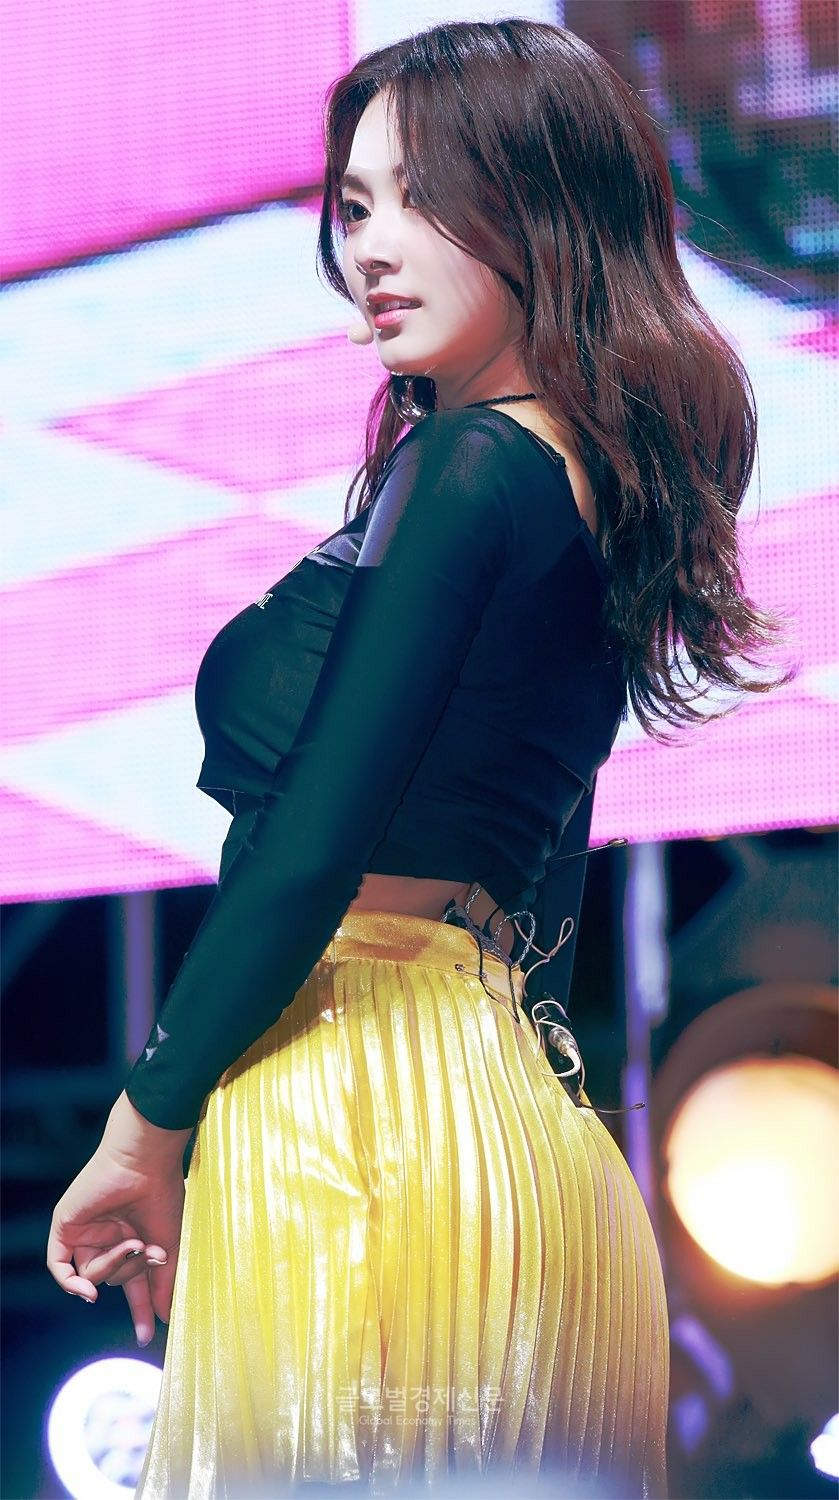 Kpop Girl Tzuyu Pinterest Kpop Actrices And Hermosa